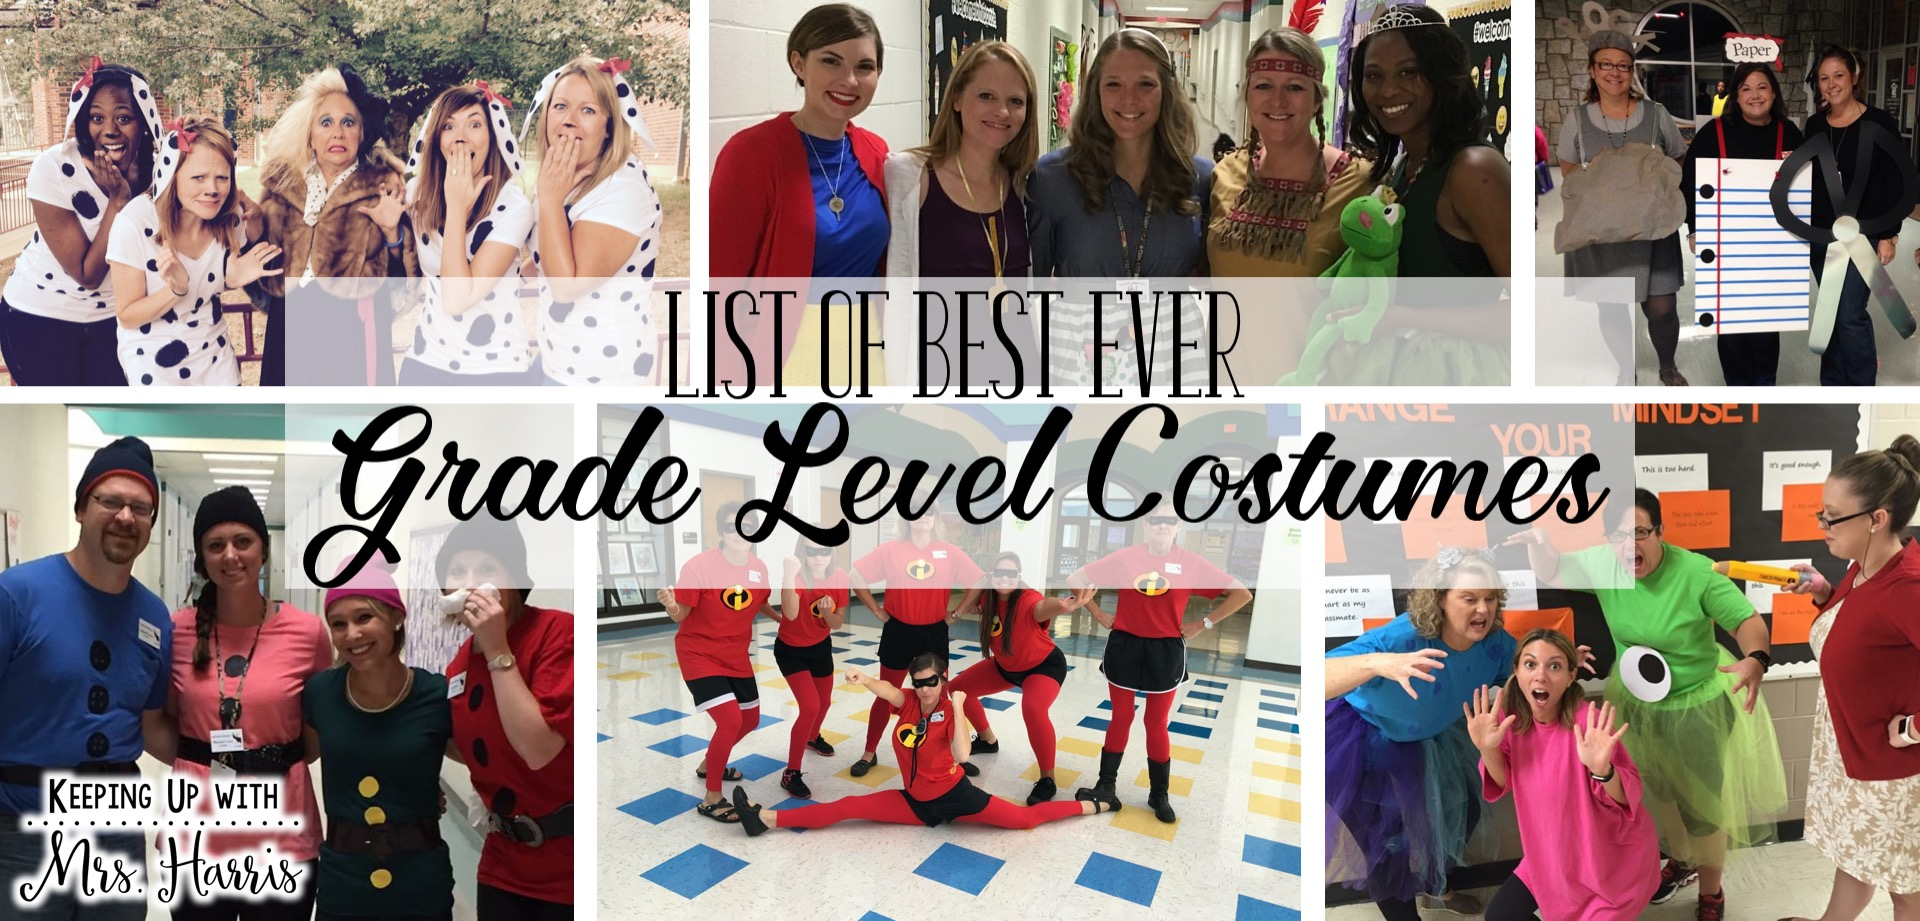 Classroom Dress Up Ideas ~ The best ever grade level costumes for teachers